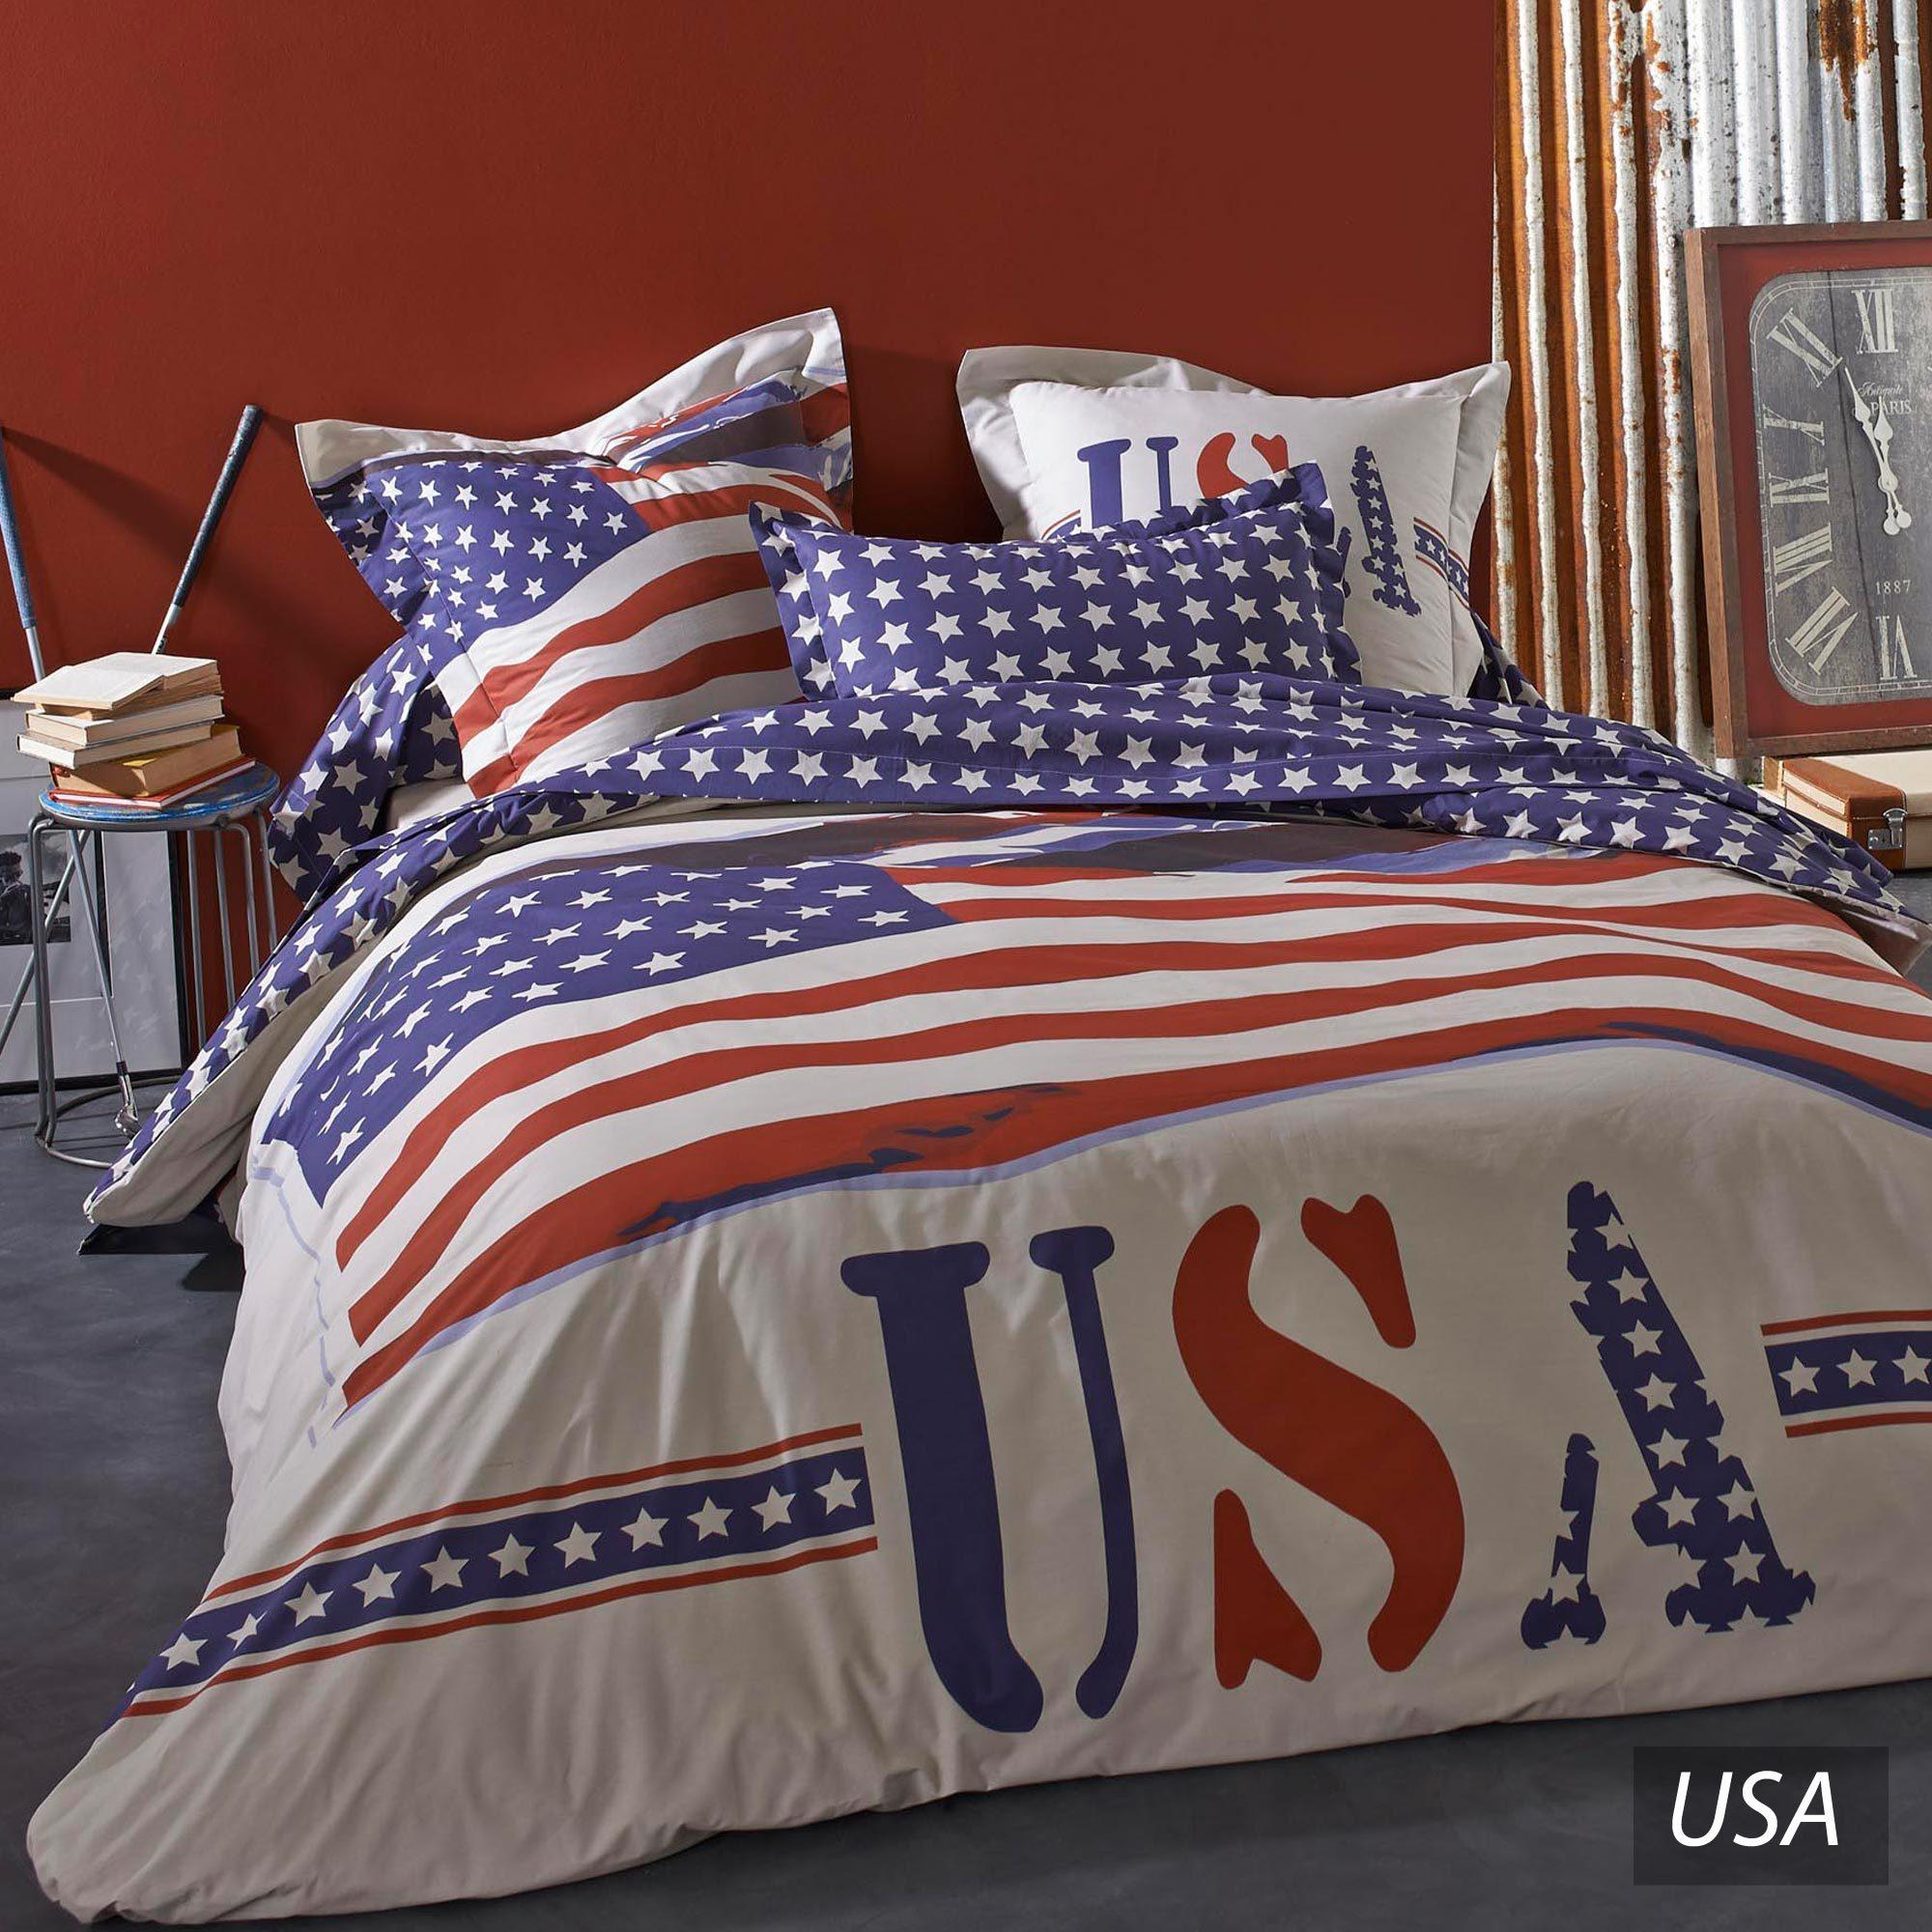 housse couette drapeau americain. Black Bedroom Furniture Sets. Home Design Ideas